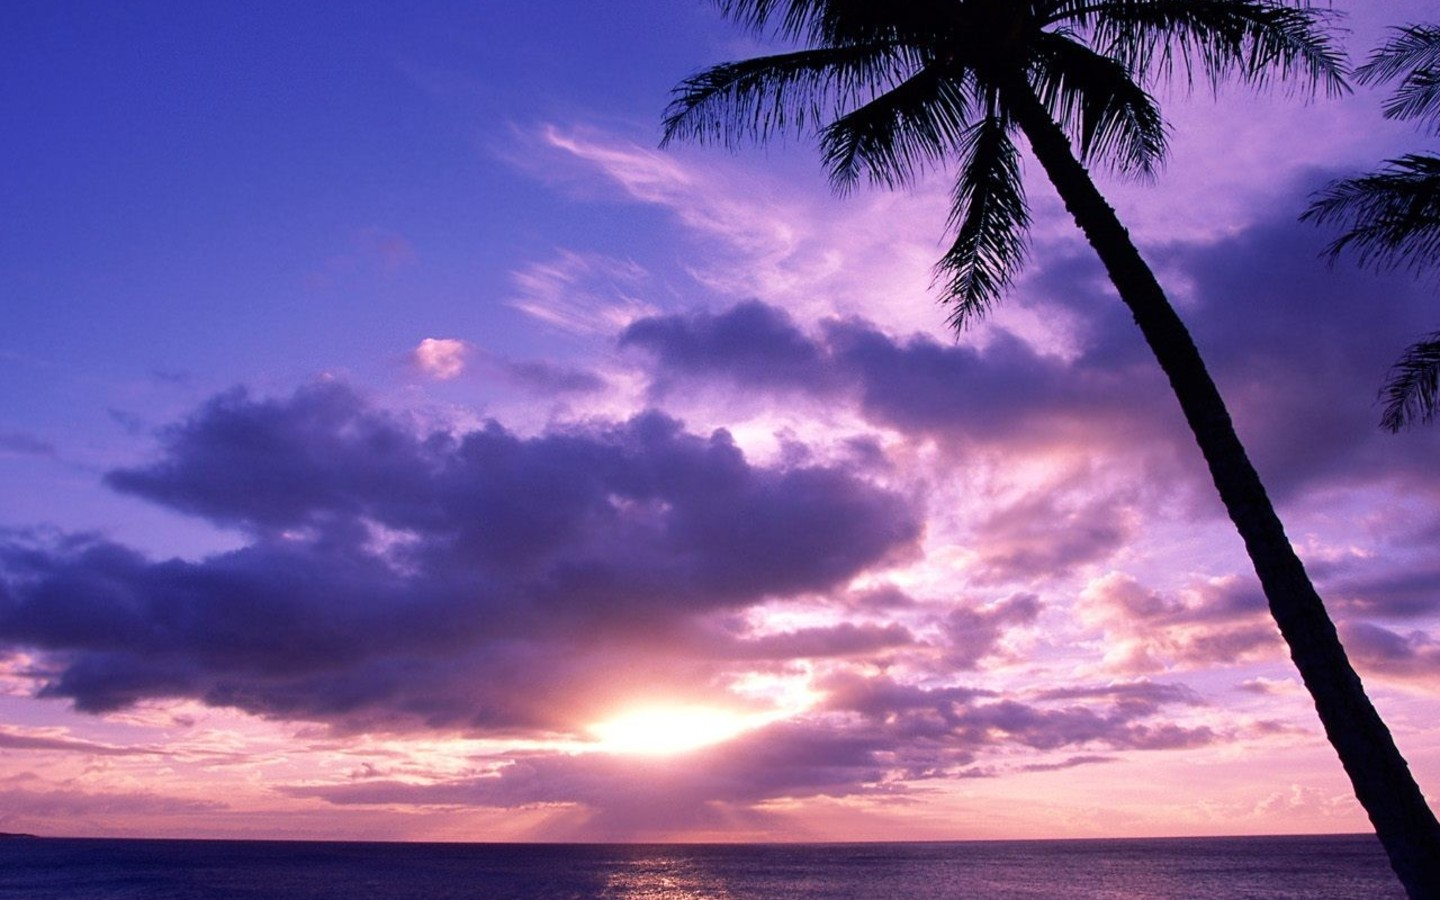 HQ Paradise Island Landscapes Sunset 1 Wallpaper   HQ Wallpapers 1440x900